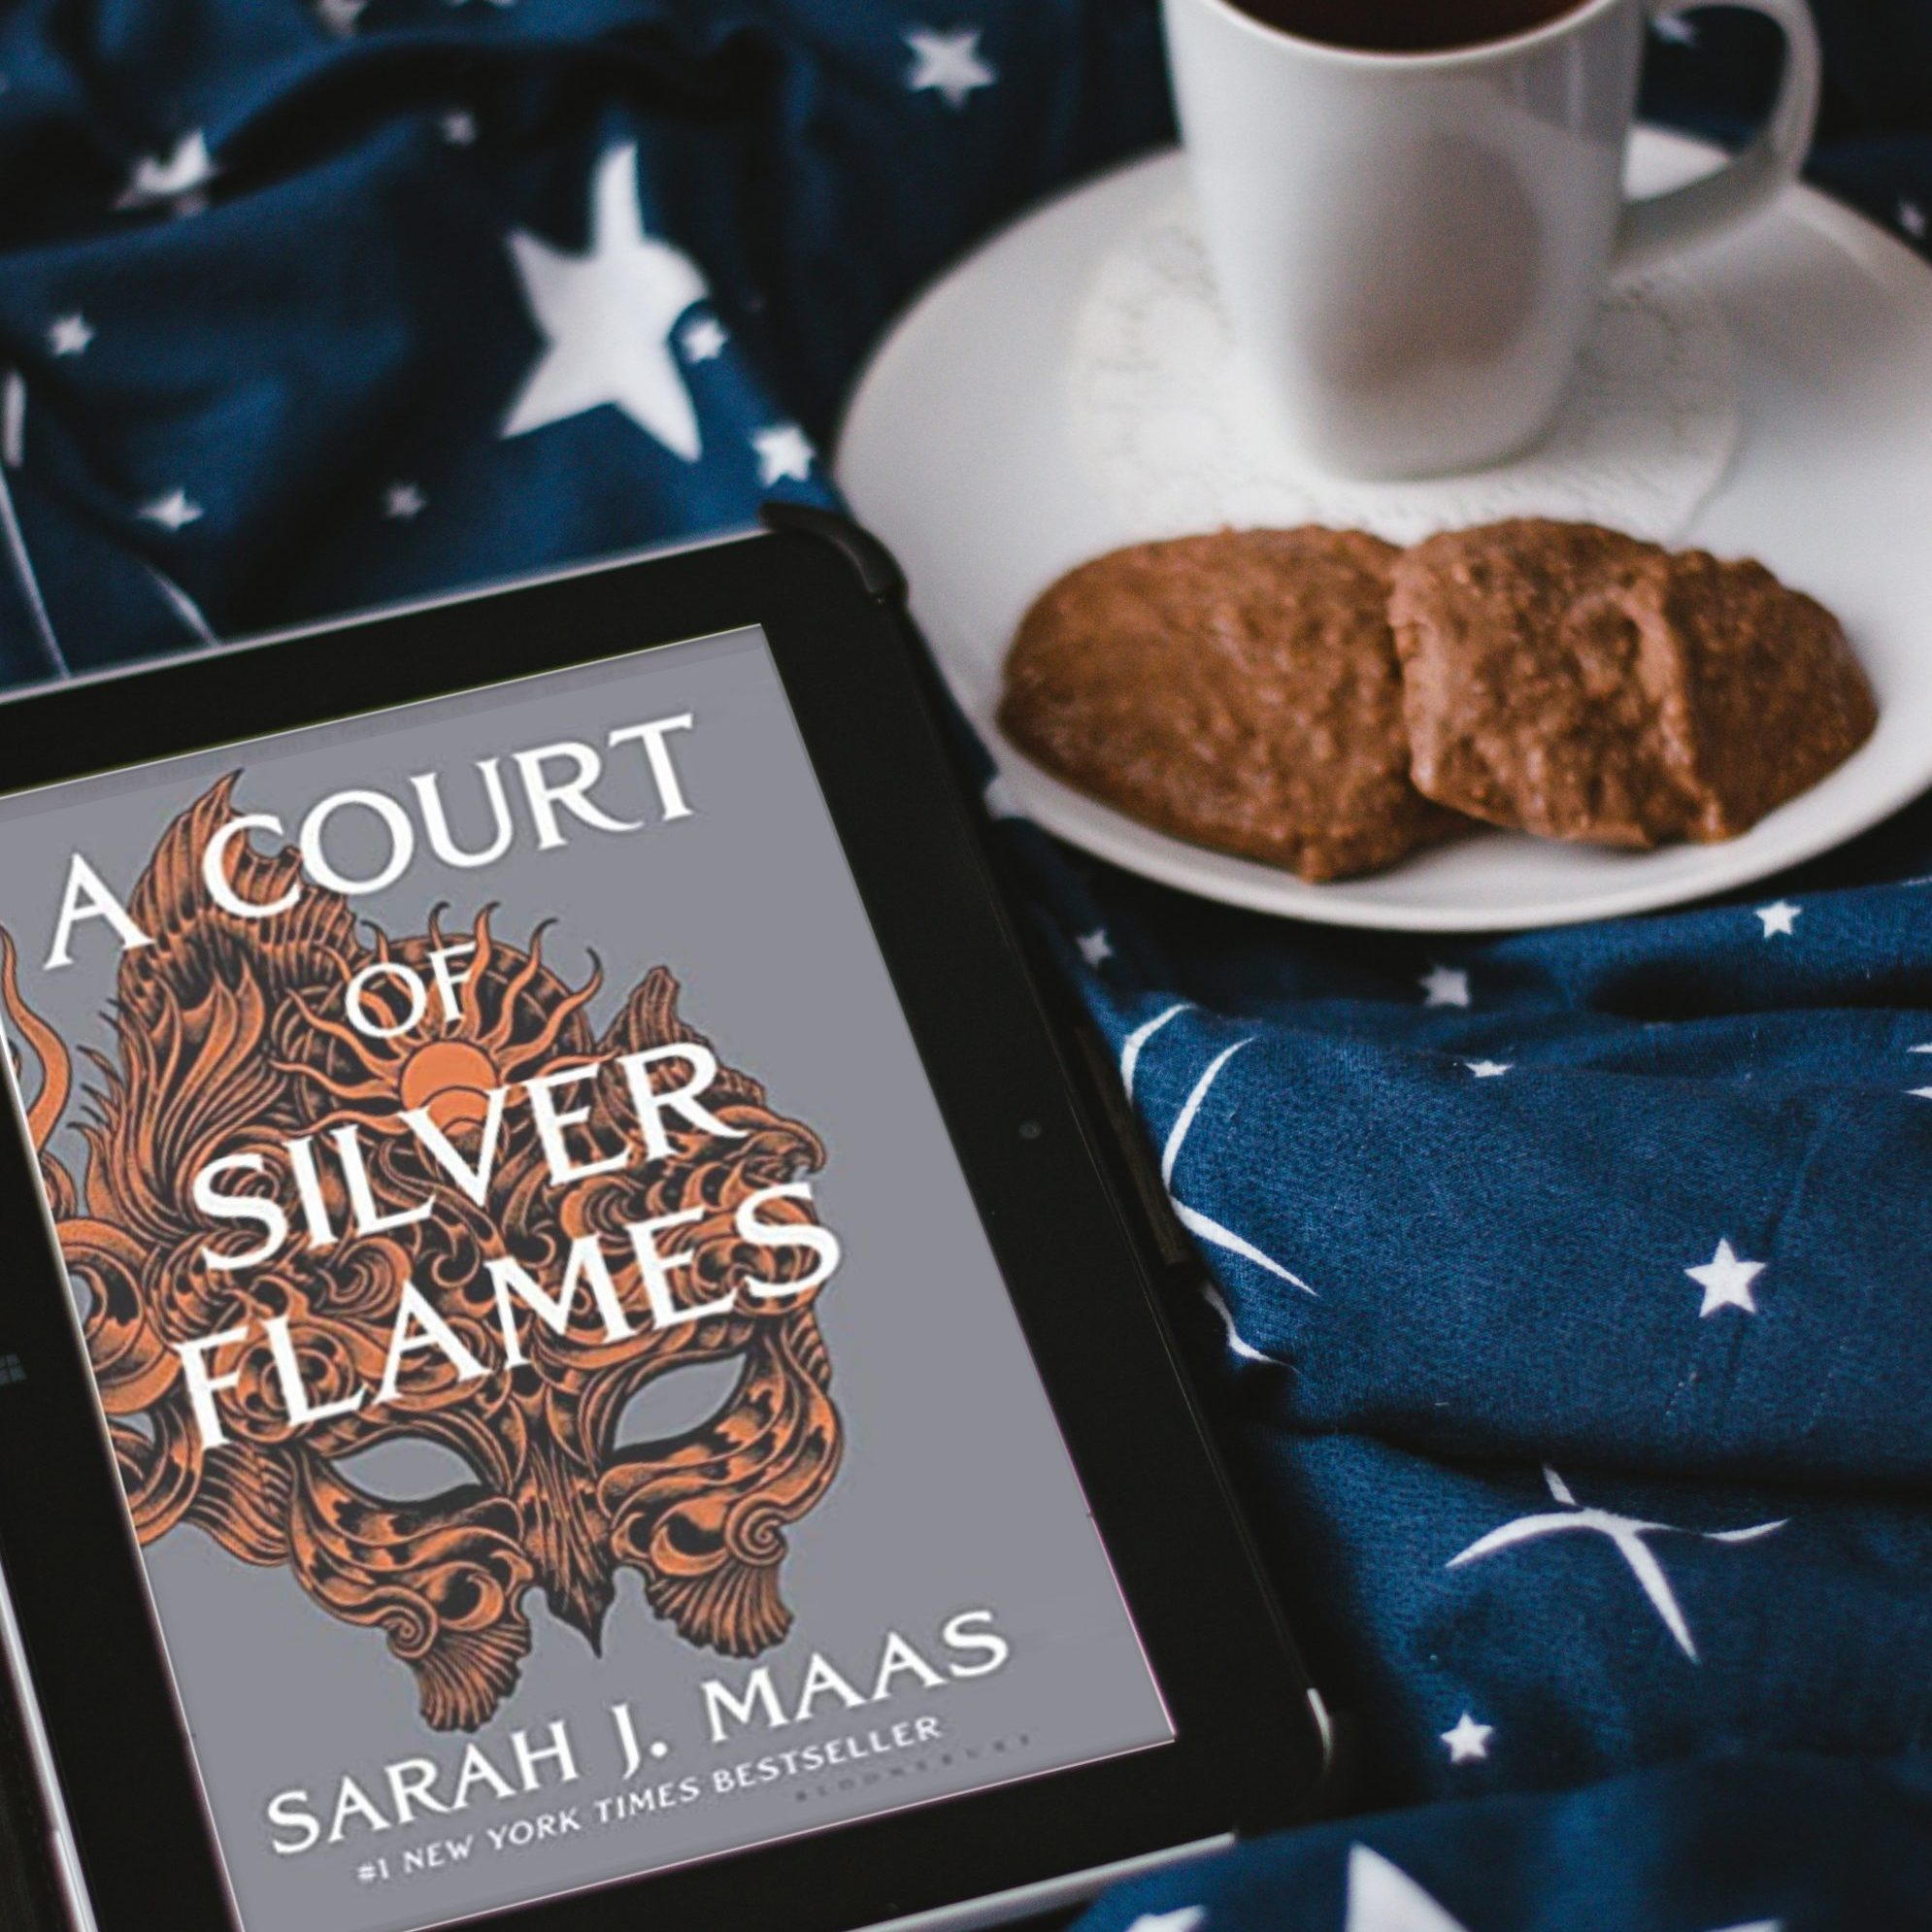 Soho Hana - Club lecture 1 - Livre A Court of Silver and Flames